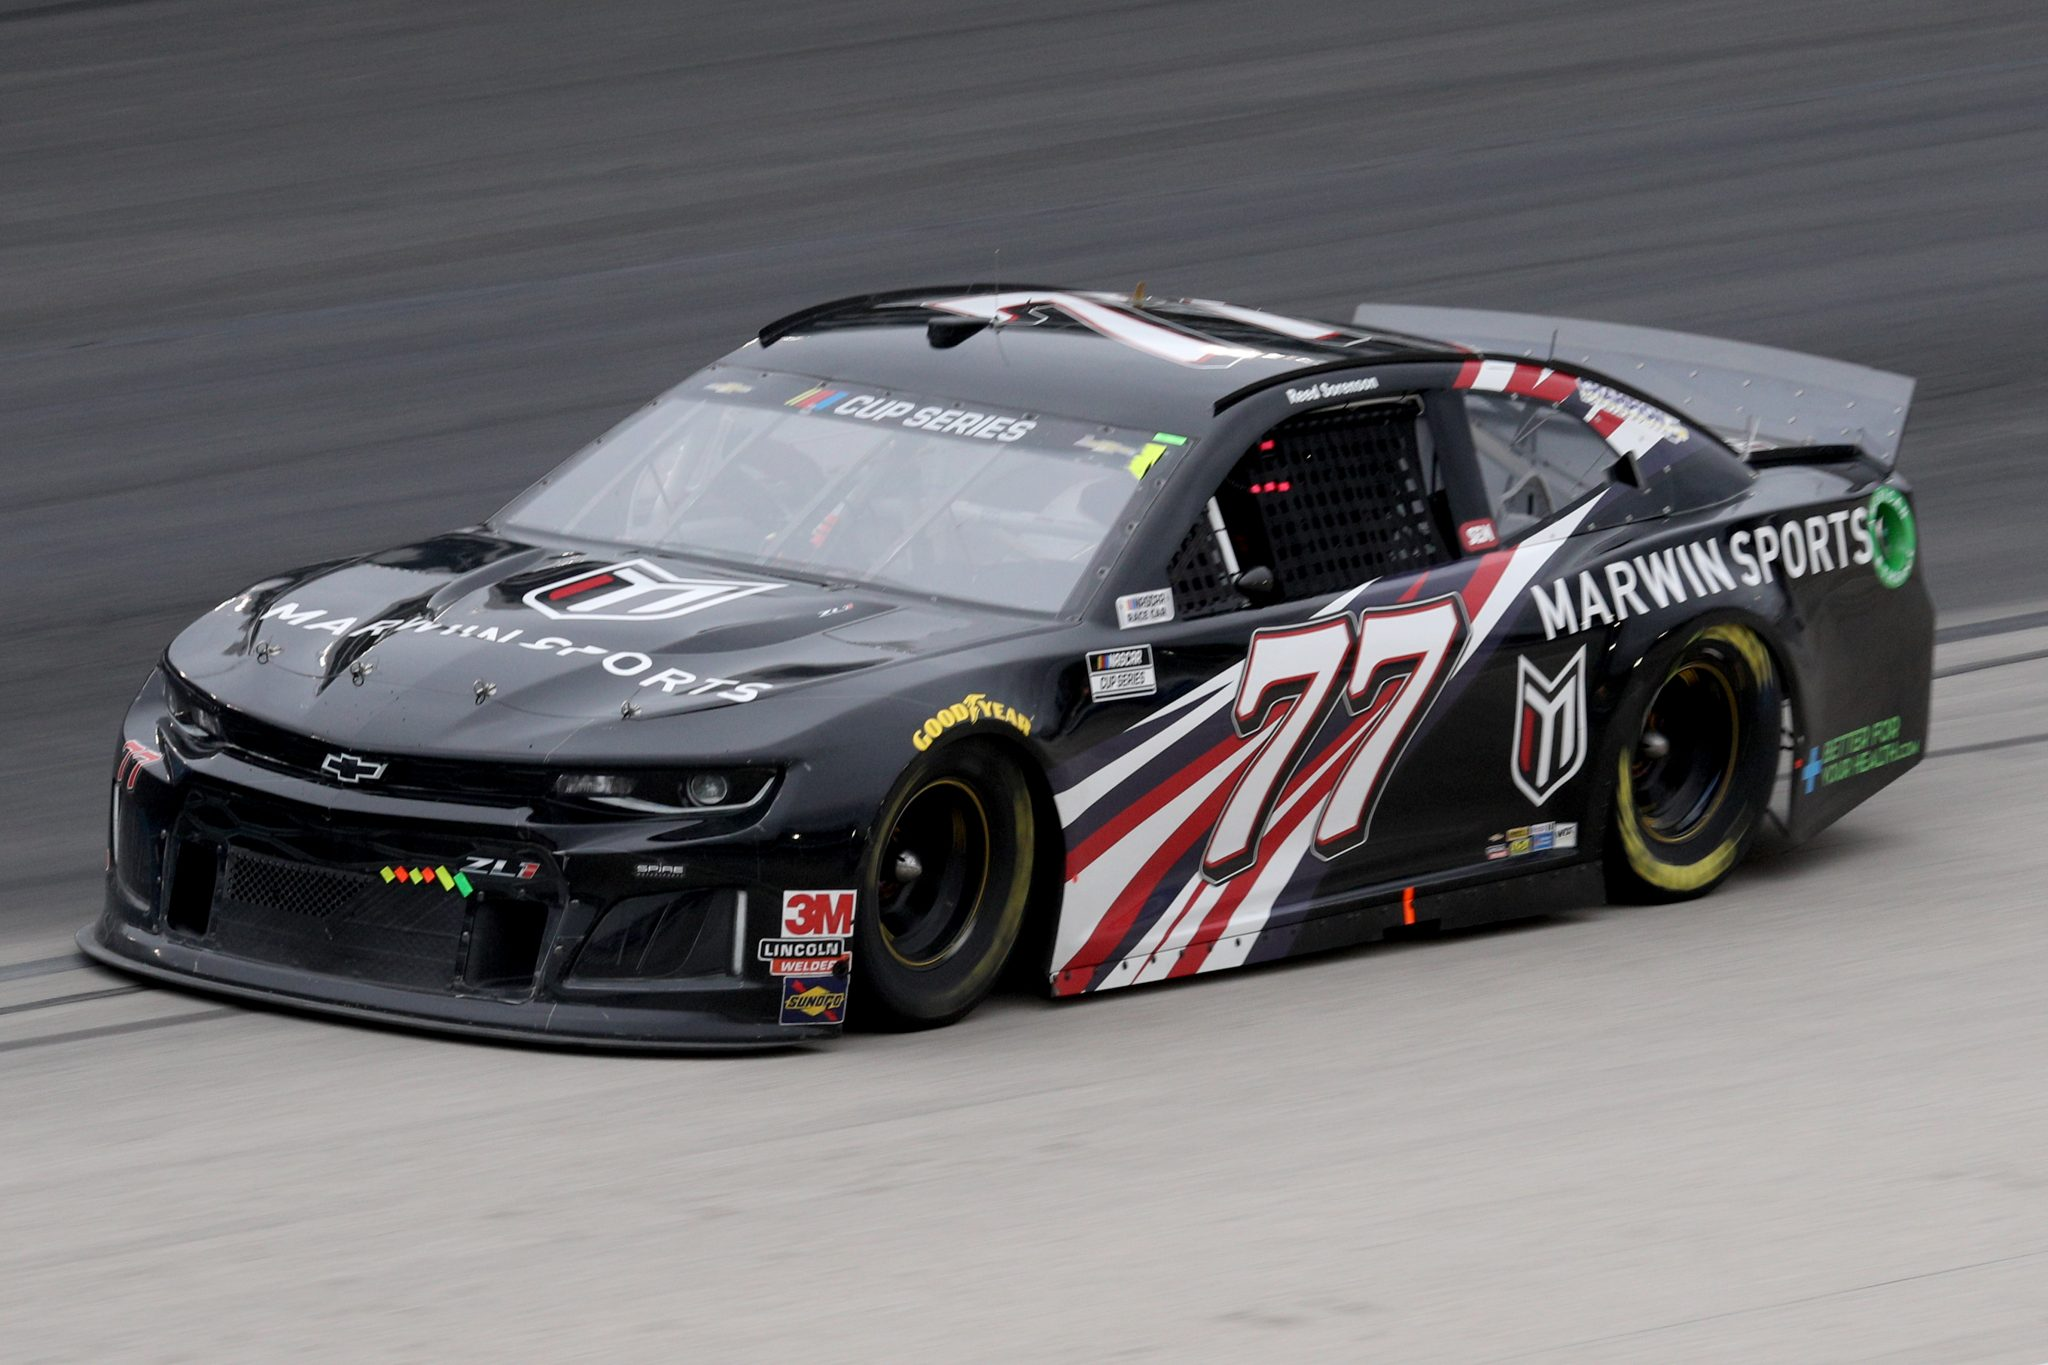 FORT WORTH, TEXAS - OCTOBER 28: Reed Sorenson, driver of the #77 Marwin Sports Chevrolet, drives during the NASCAR Cup Series Autotrader EchoPark Automotive 500 at Texas Motor Speedway on October 28, 2020 in Fort Worth, Texas. (Photo by Chris Graythen/Getty Images)   Getty Images